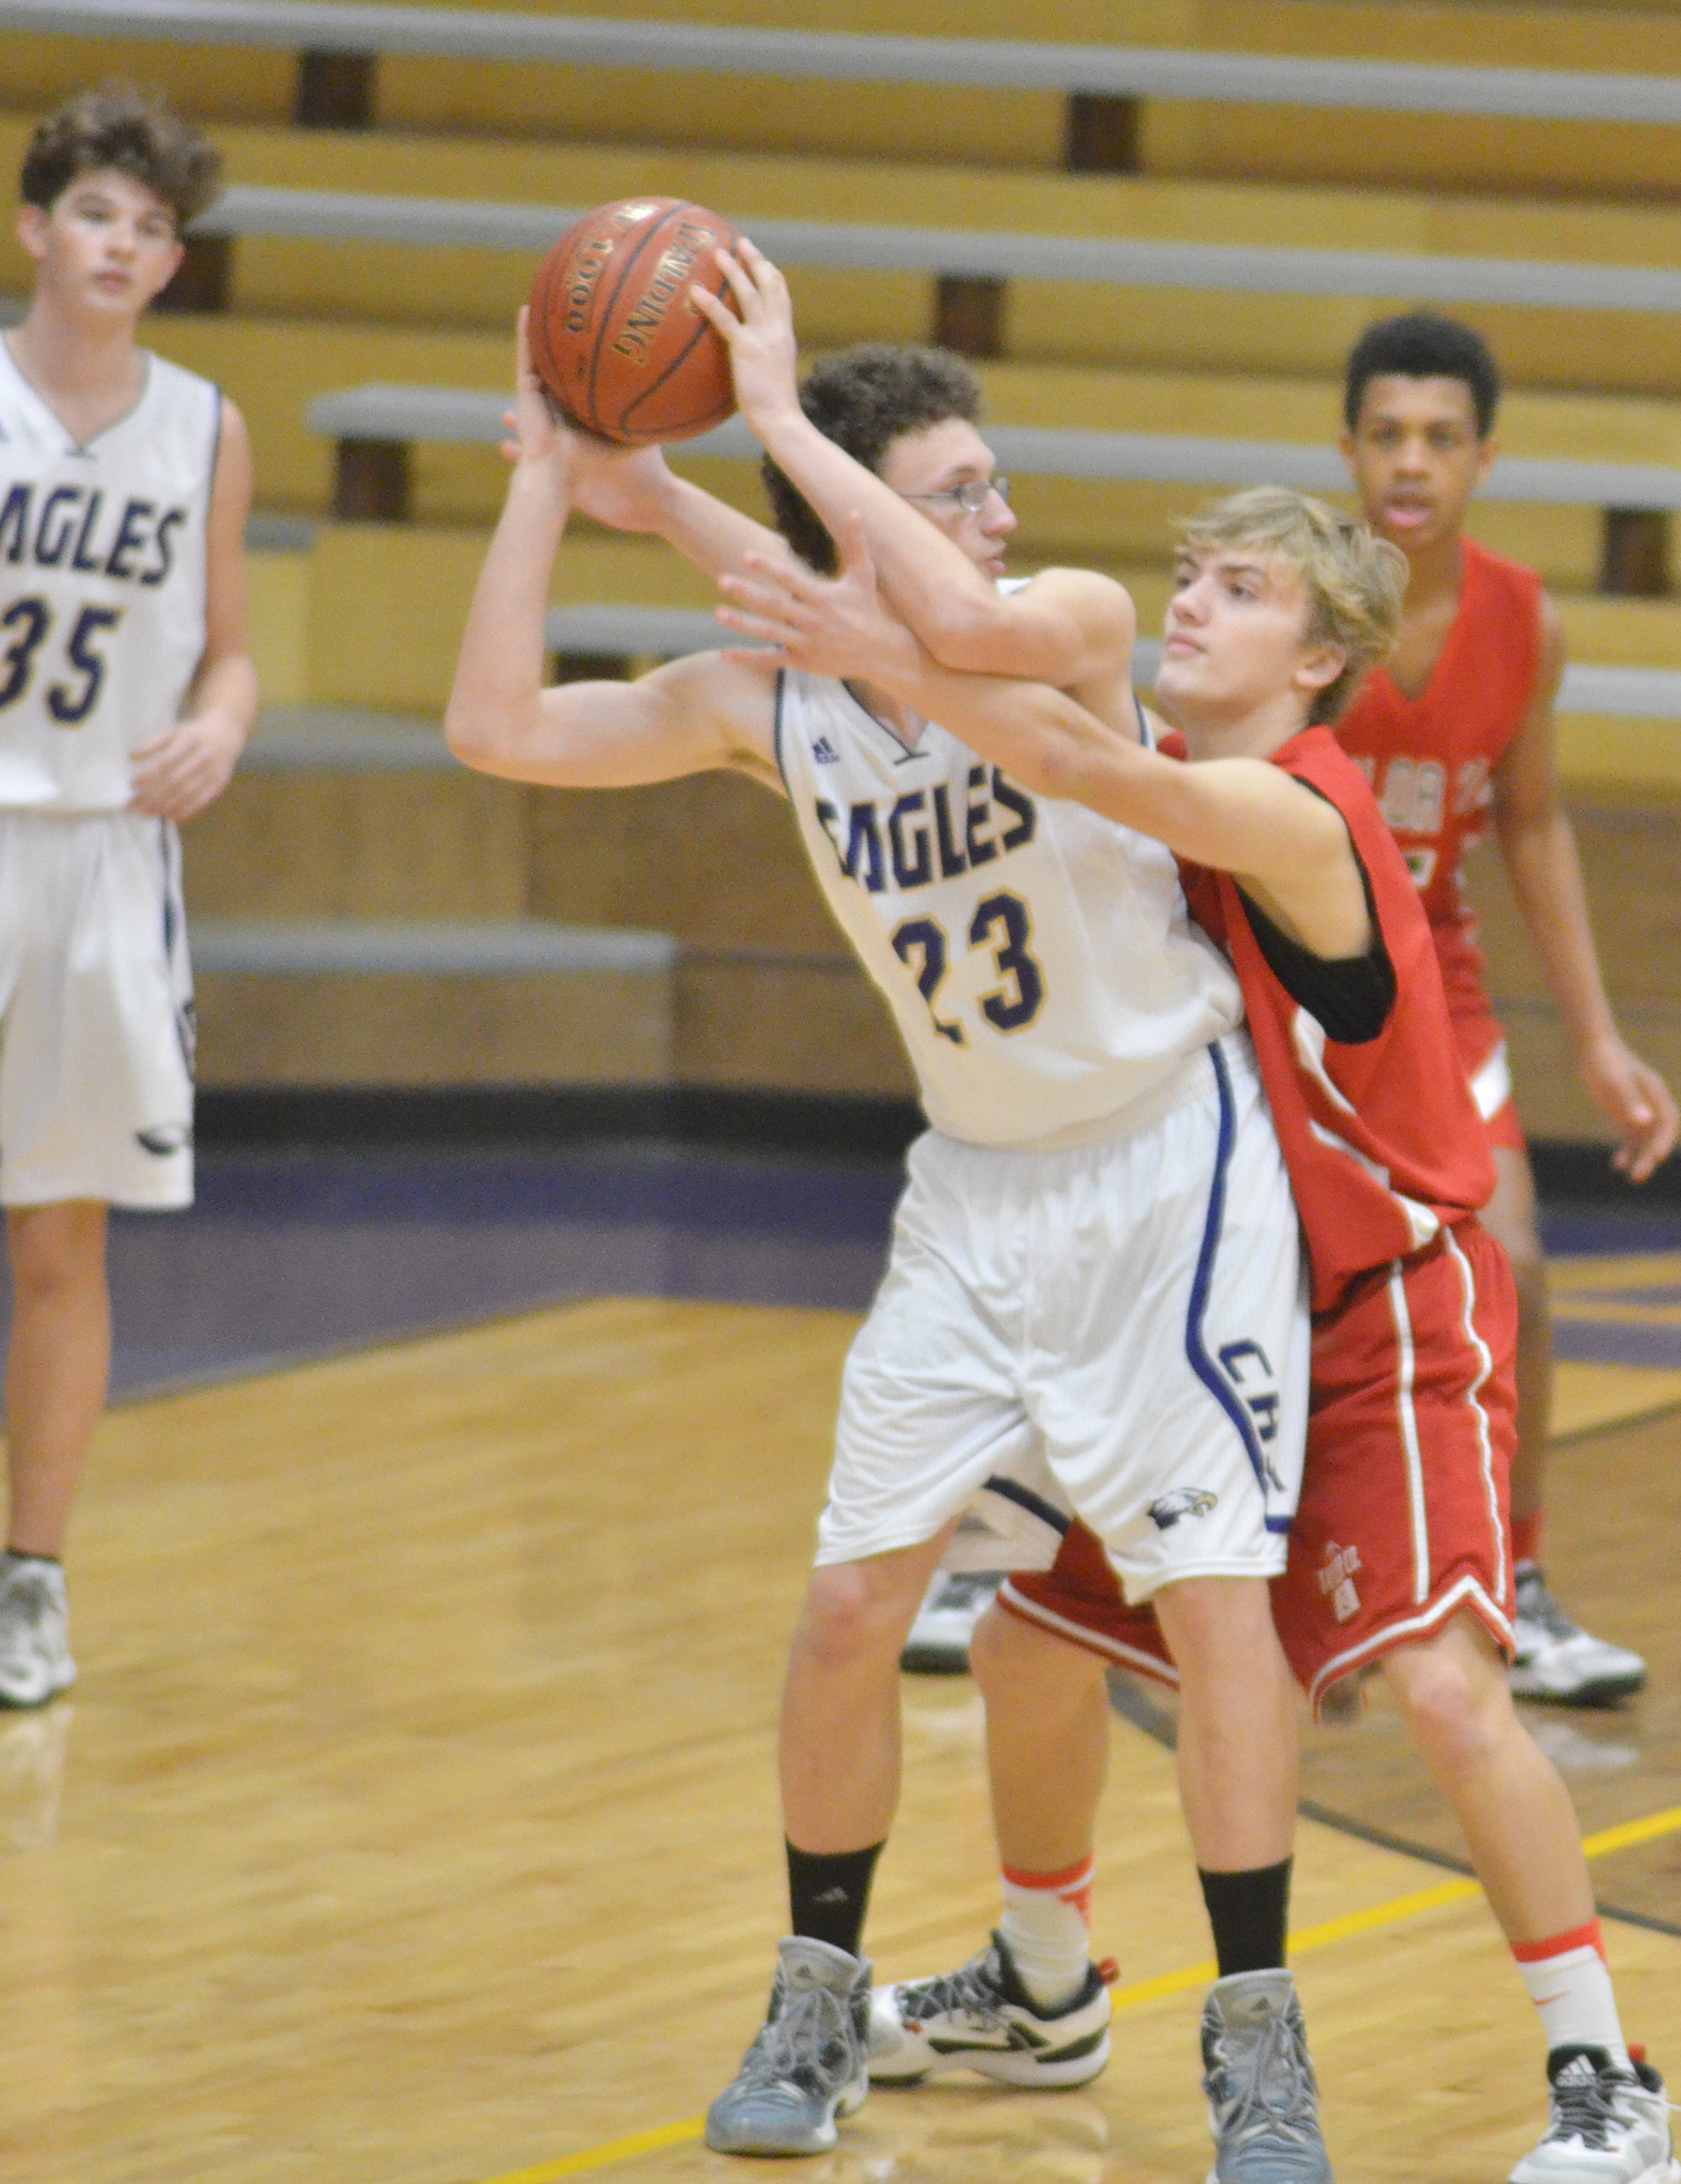 CHS freshman Brennon Wheeler protects the ball.